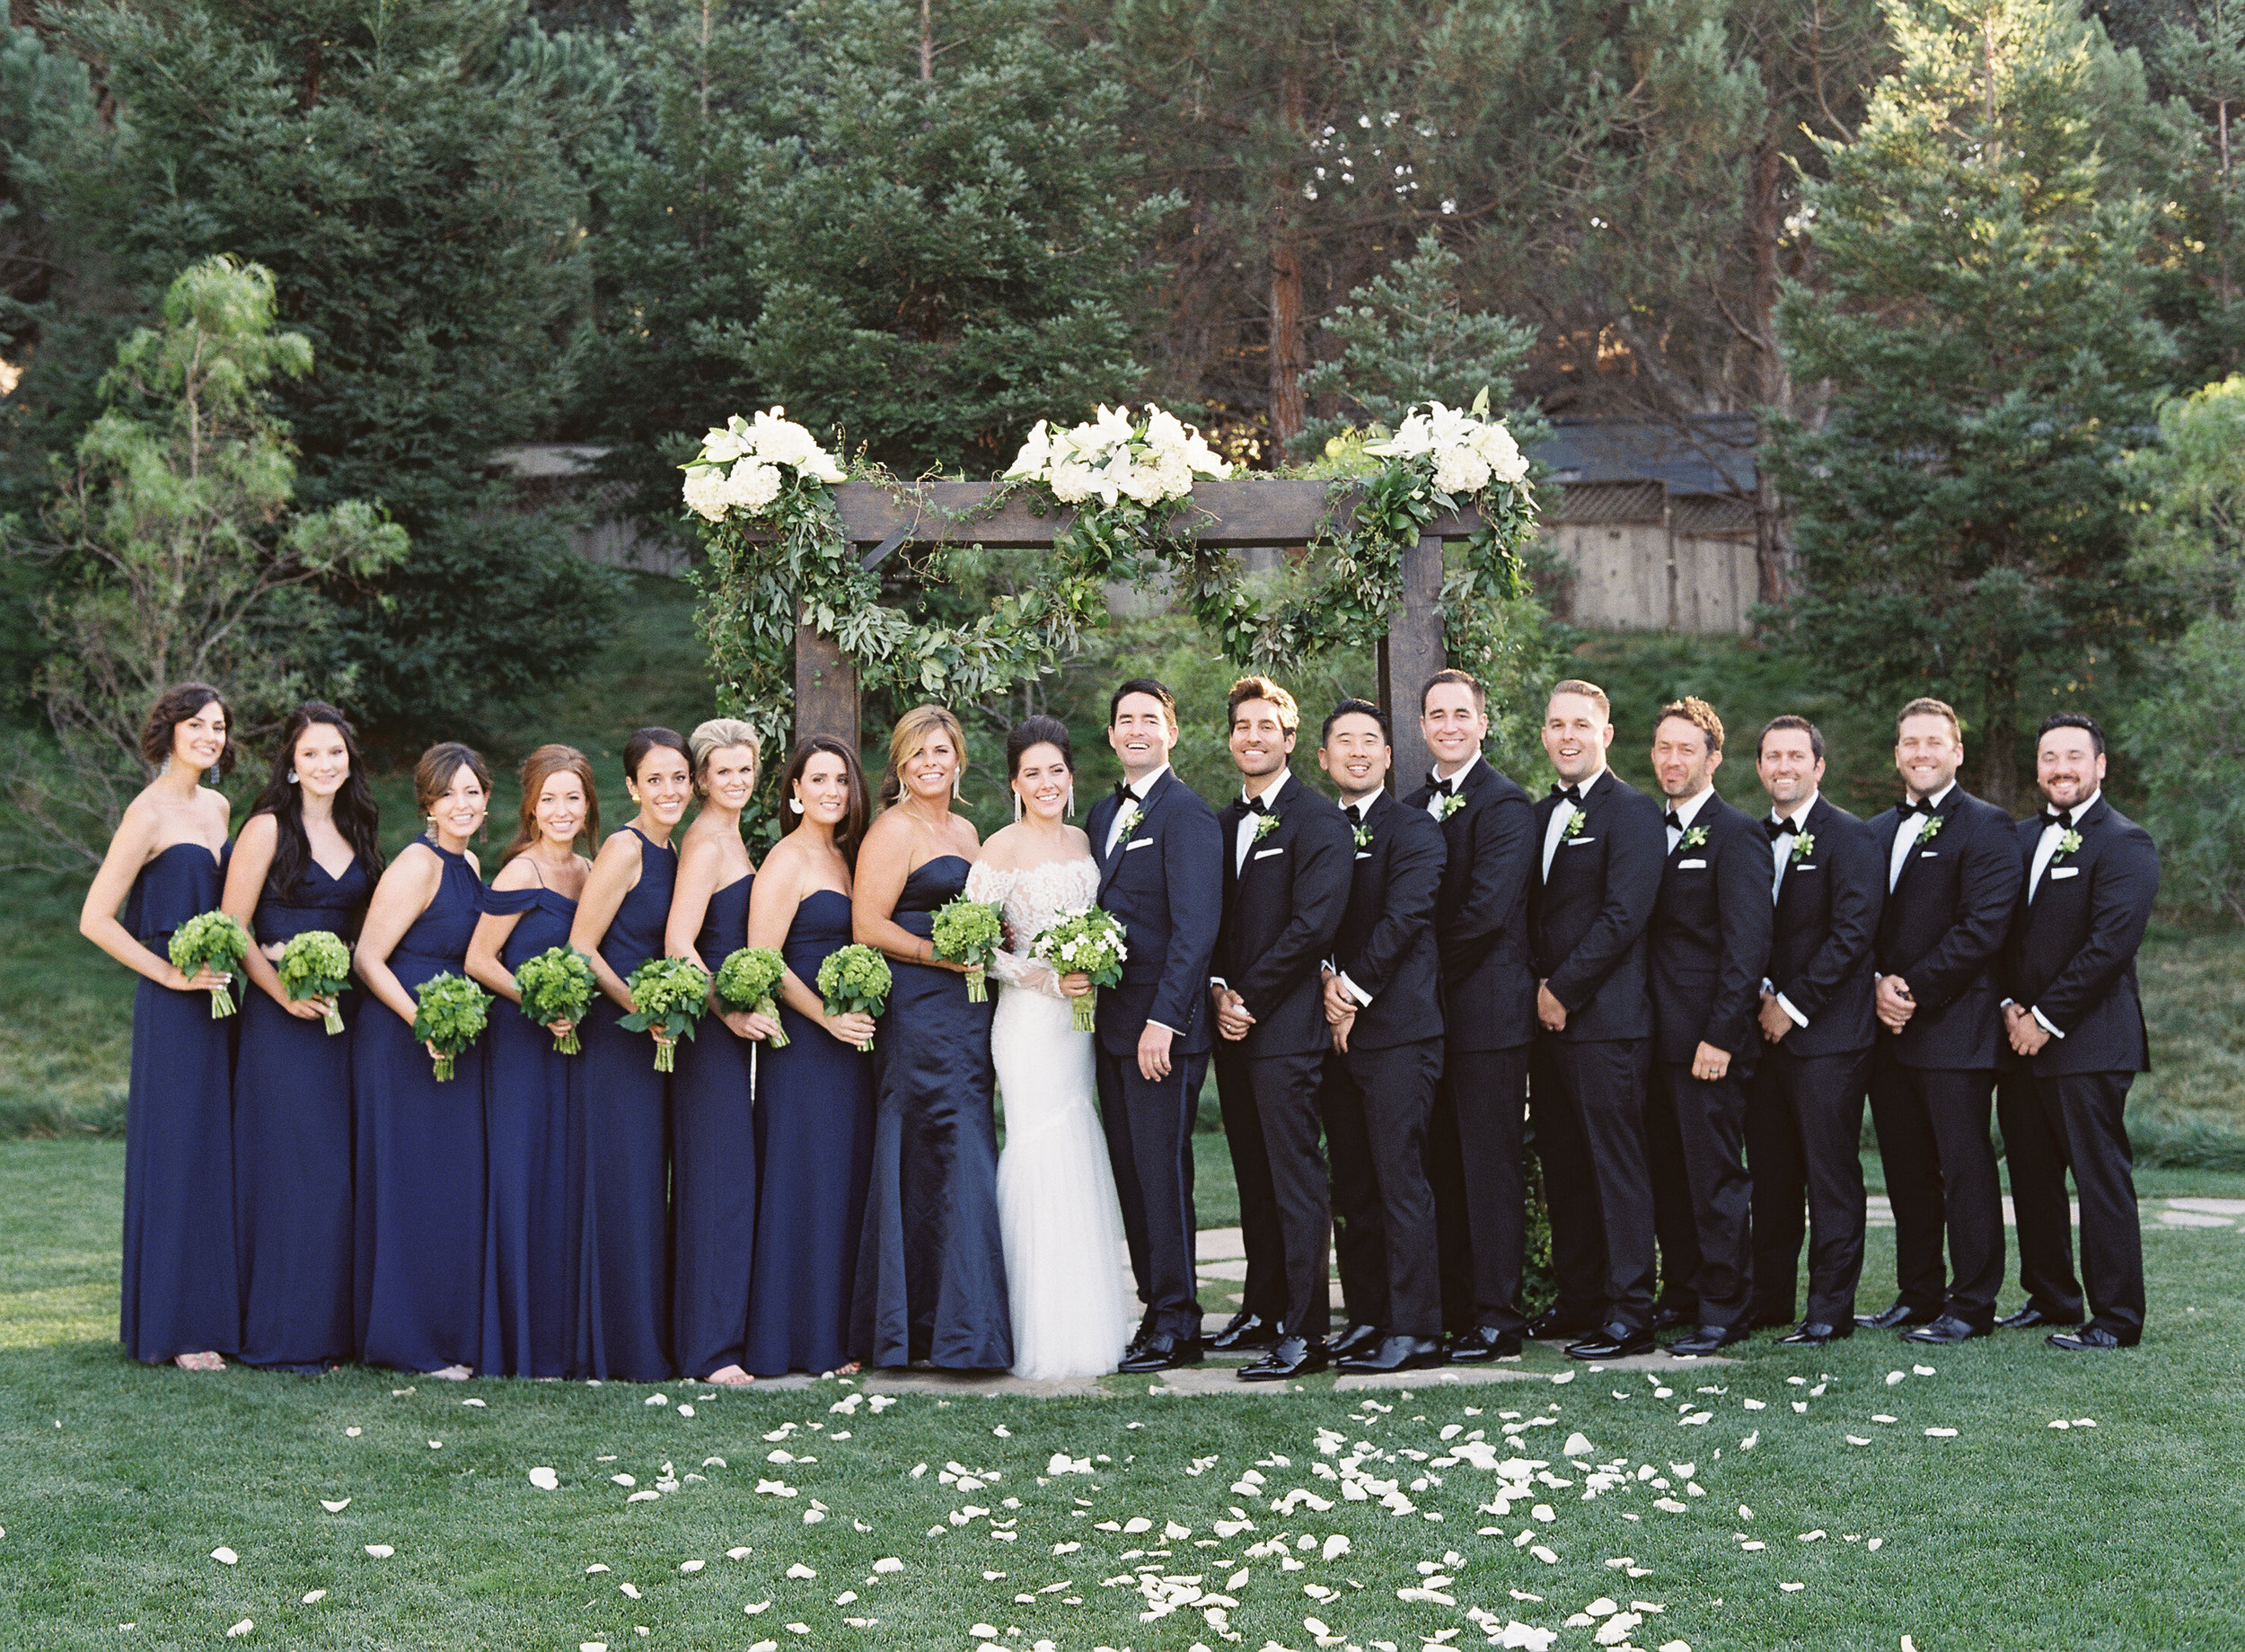 Meghan Mehan Photography - Carmel Valley Ranch Wedding 078.jpg